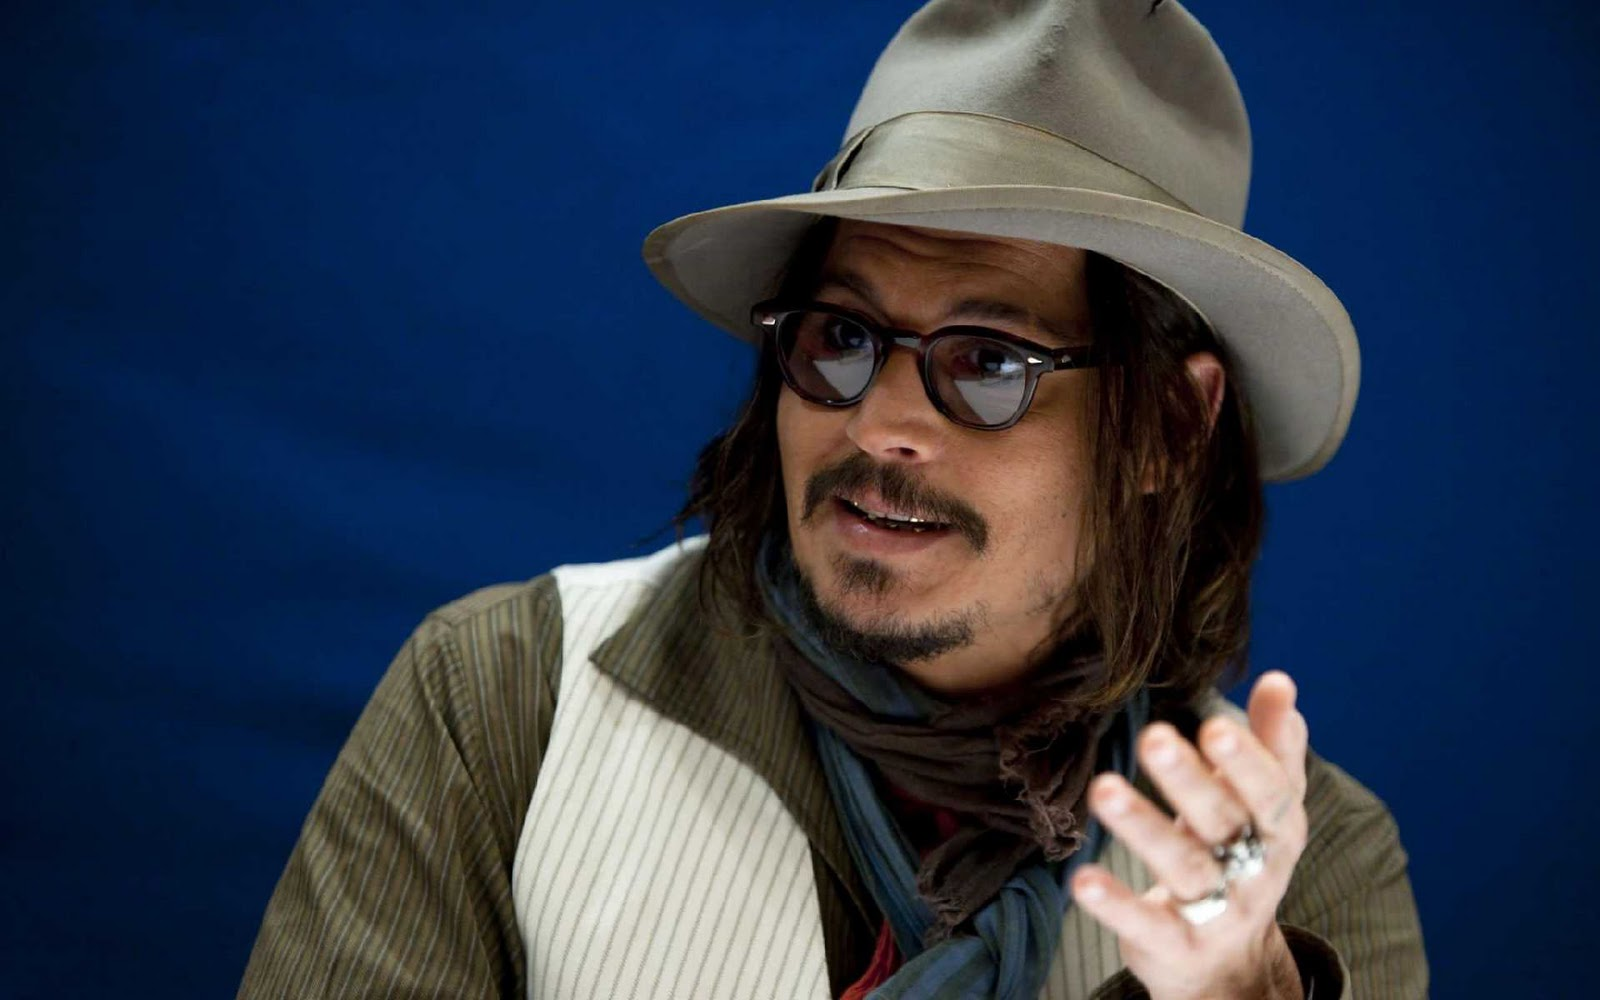 http://1.bp.blogspot.com/-vzvushfQ_cc/TtcKNLK_JNI/AAAAAAAAAfA/J9TwGElGTEc/s1600/Johnny-Depp-pictures-desktop-Wallpapers-HD-photo-images-3.jpg